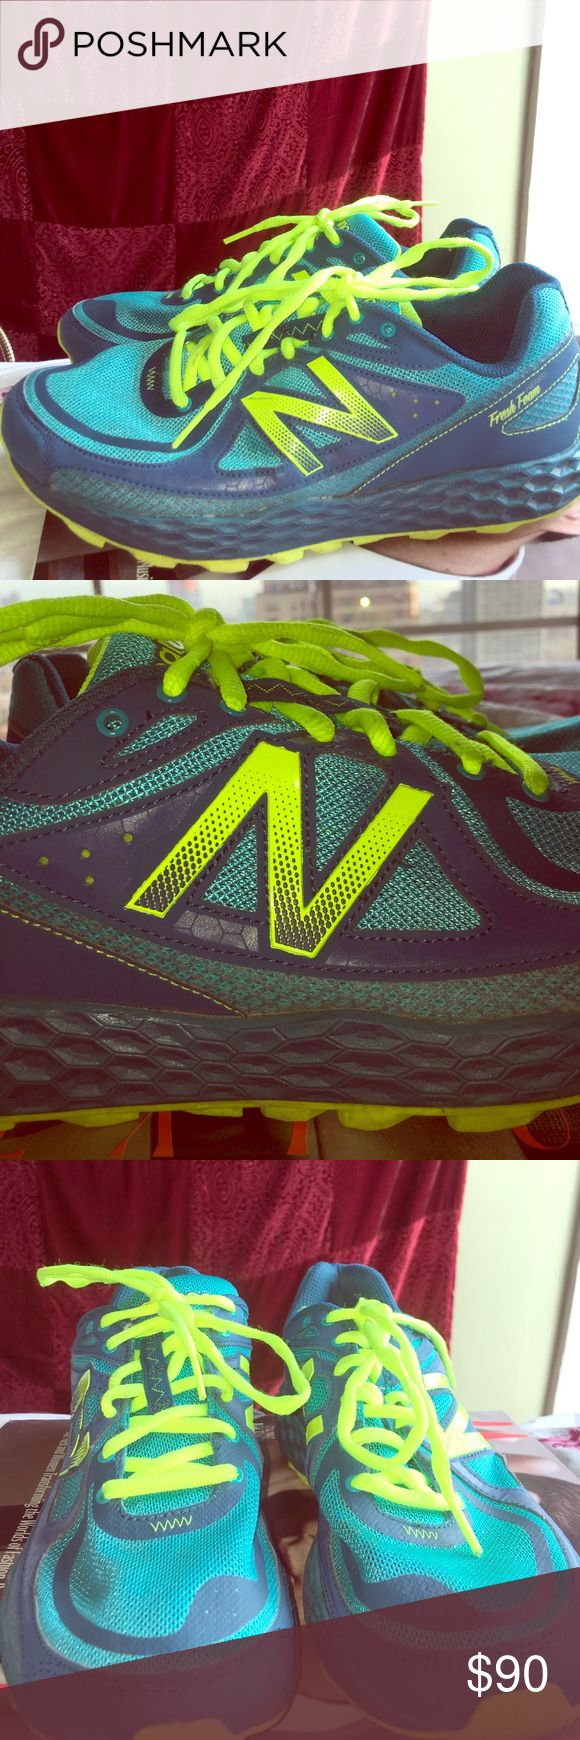 New Balance Fresh Foam running shoes Blue and neon green New Balance fresh foam padded insoles with mesh breathable material on top. Only worn twice New Balance Shoes Athletic Shoes